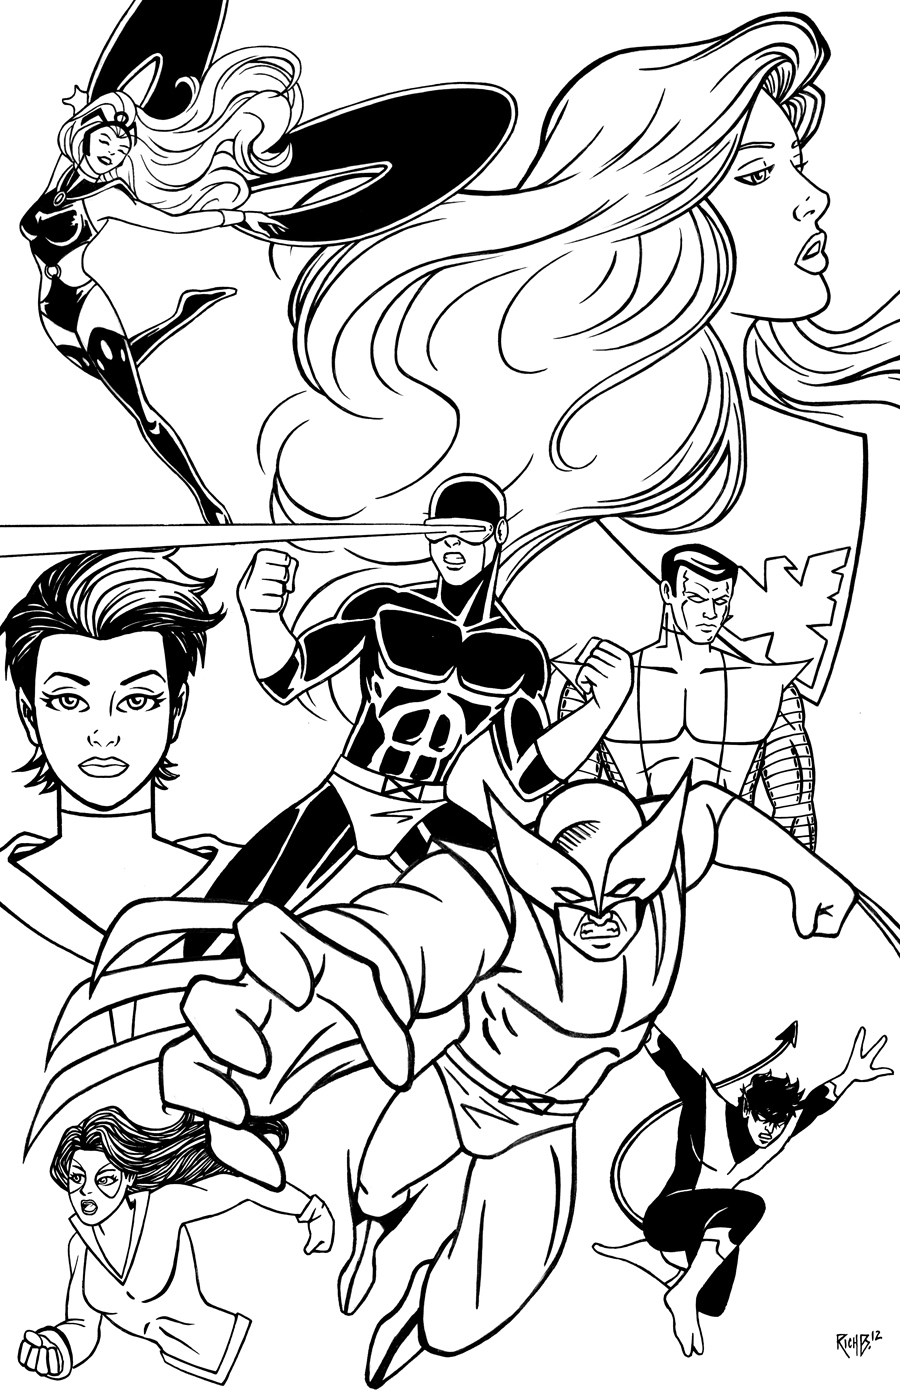 x men pinup inks by richbernatovech on deviantart